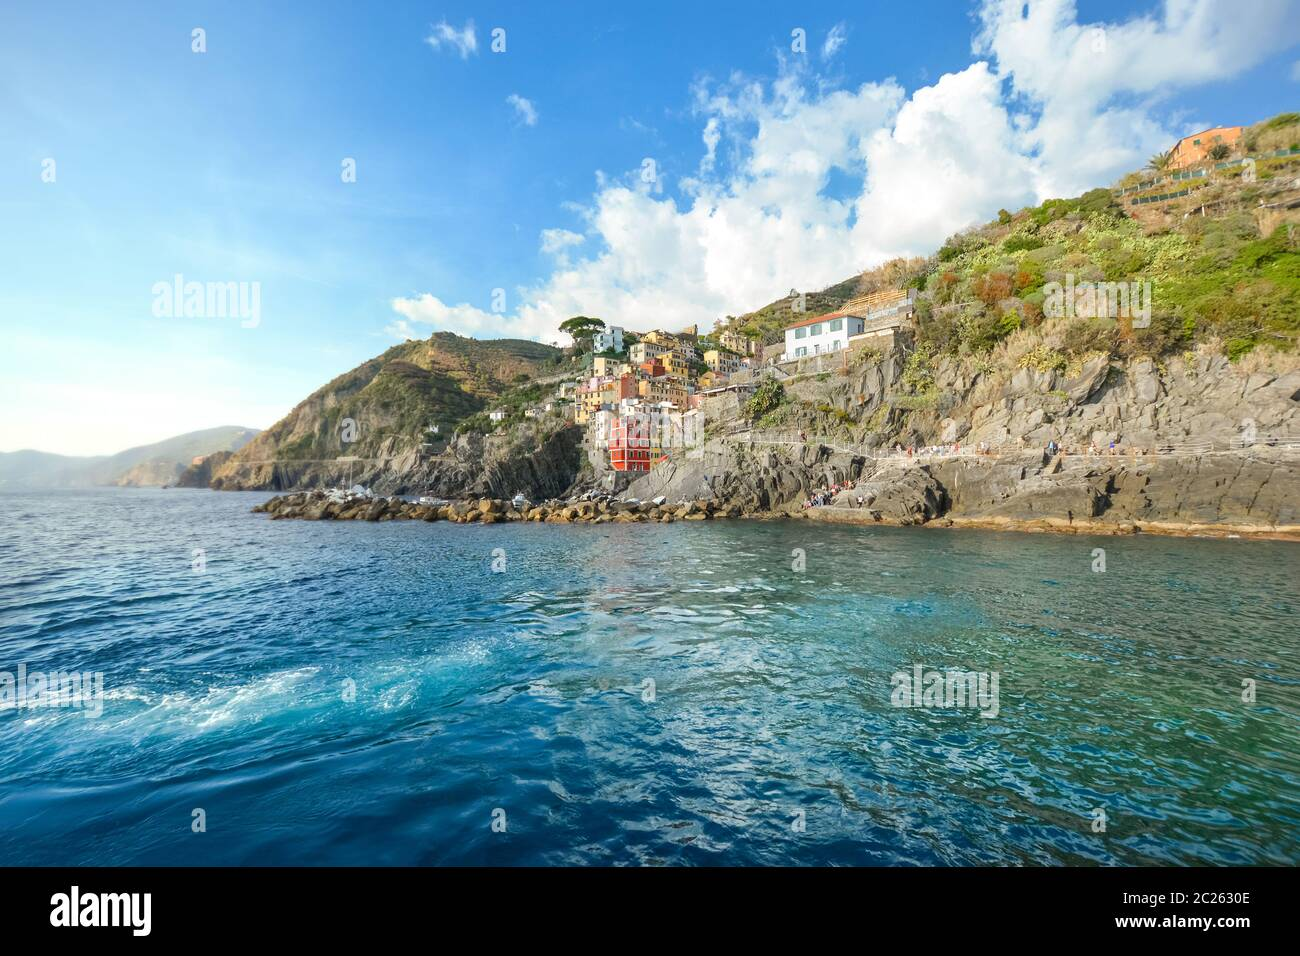 The rocky coastline of Riomaggiore, Italy, part of the five fishing villages that make up the Cinque Terre on the Ligurian coast of Italy. Stock Photo